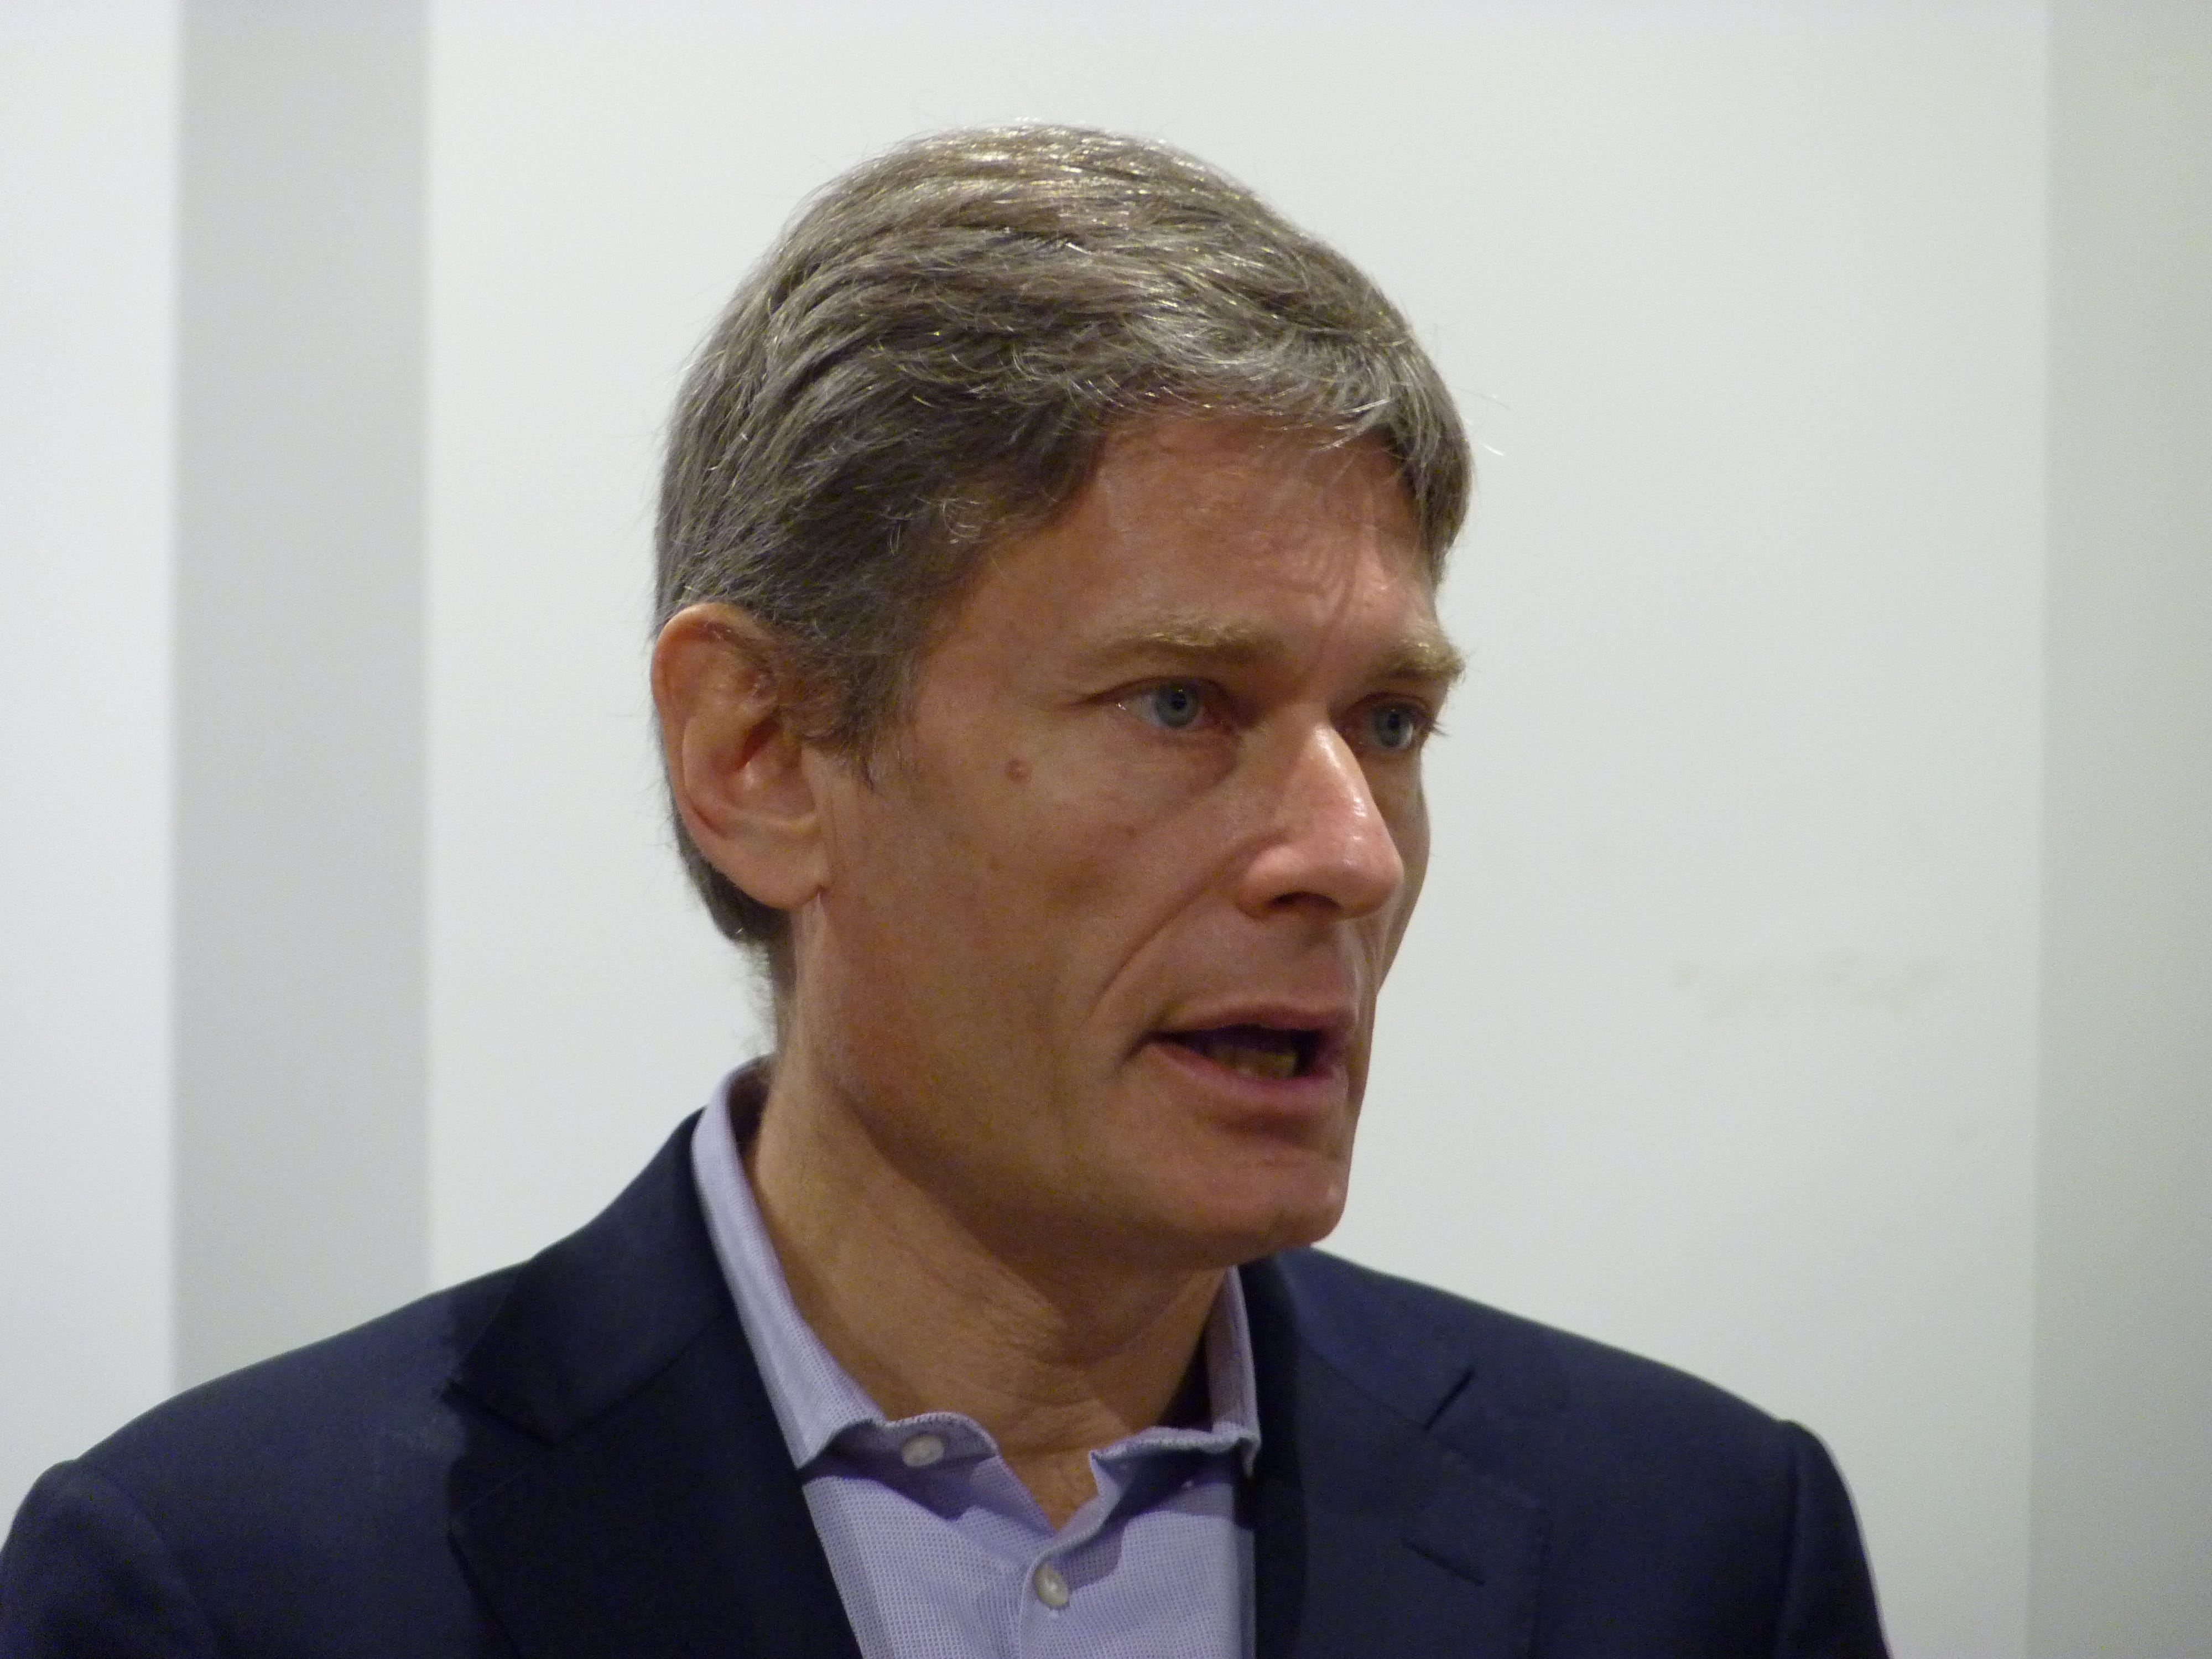 The gallery/album title should be: Tom Malinowski holds Somerville town hall    the description for each should be: Congressman-elect Tom Malinowski held a town hall on Saturday, Dec. 15 in Somerville to speak to his constituents on issues regarding transportation, health care, immigration.